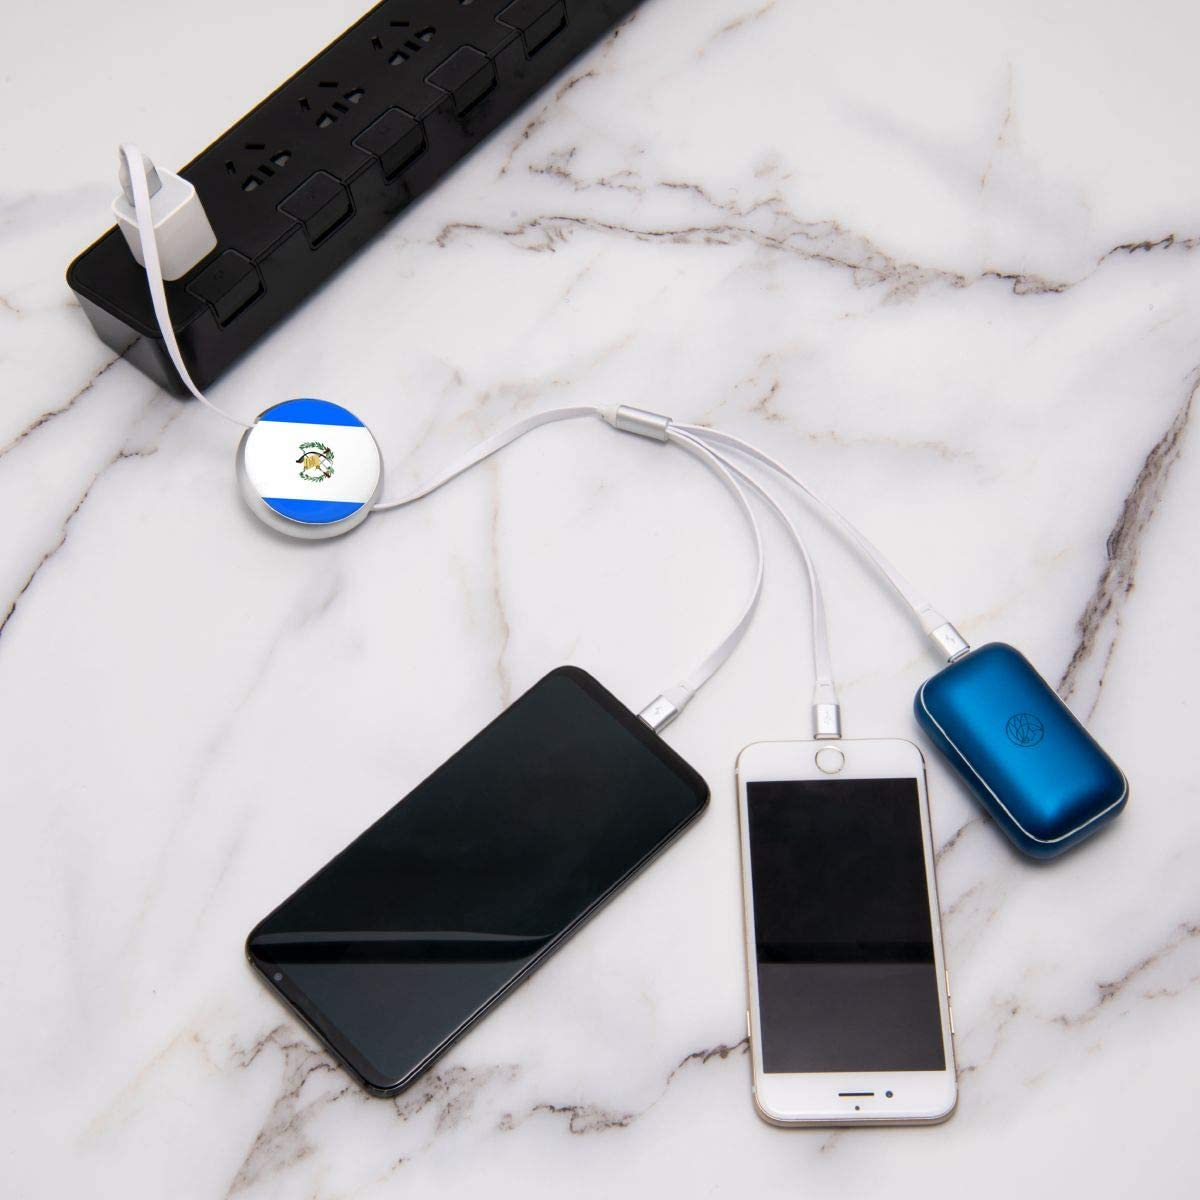 Guatemala Flag Round Telescopic Aluminum Alloy Shell Charging Cable Three-in-One Data USB Cable Phone Charger